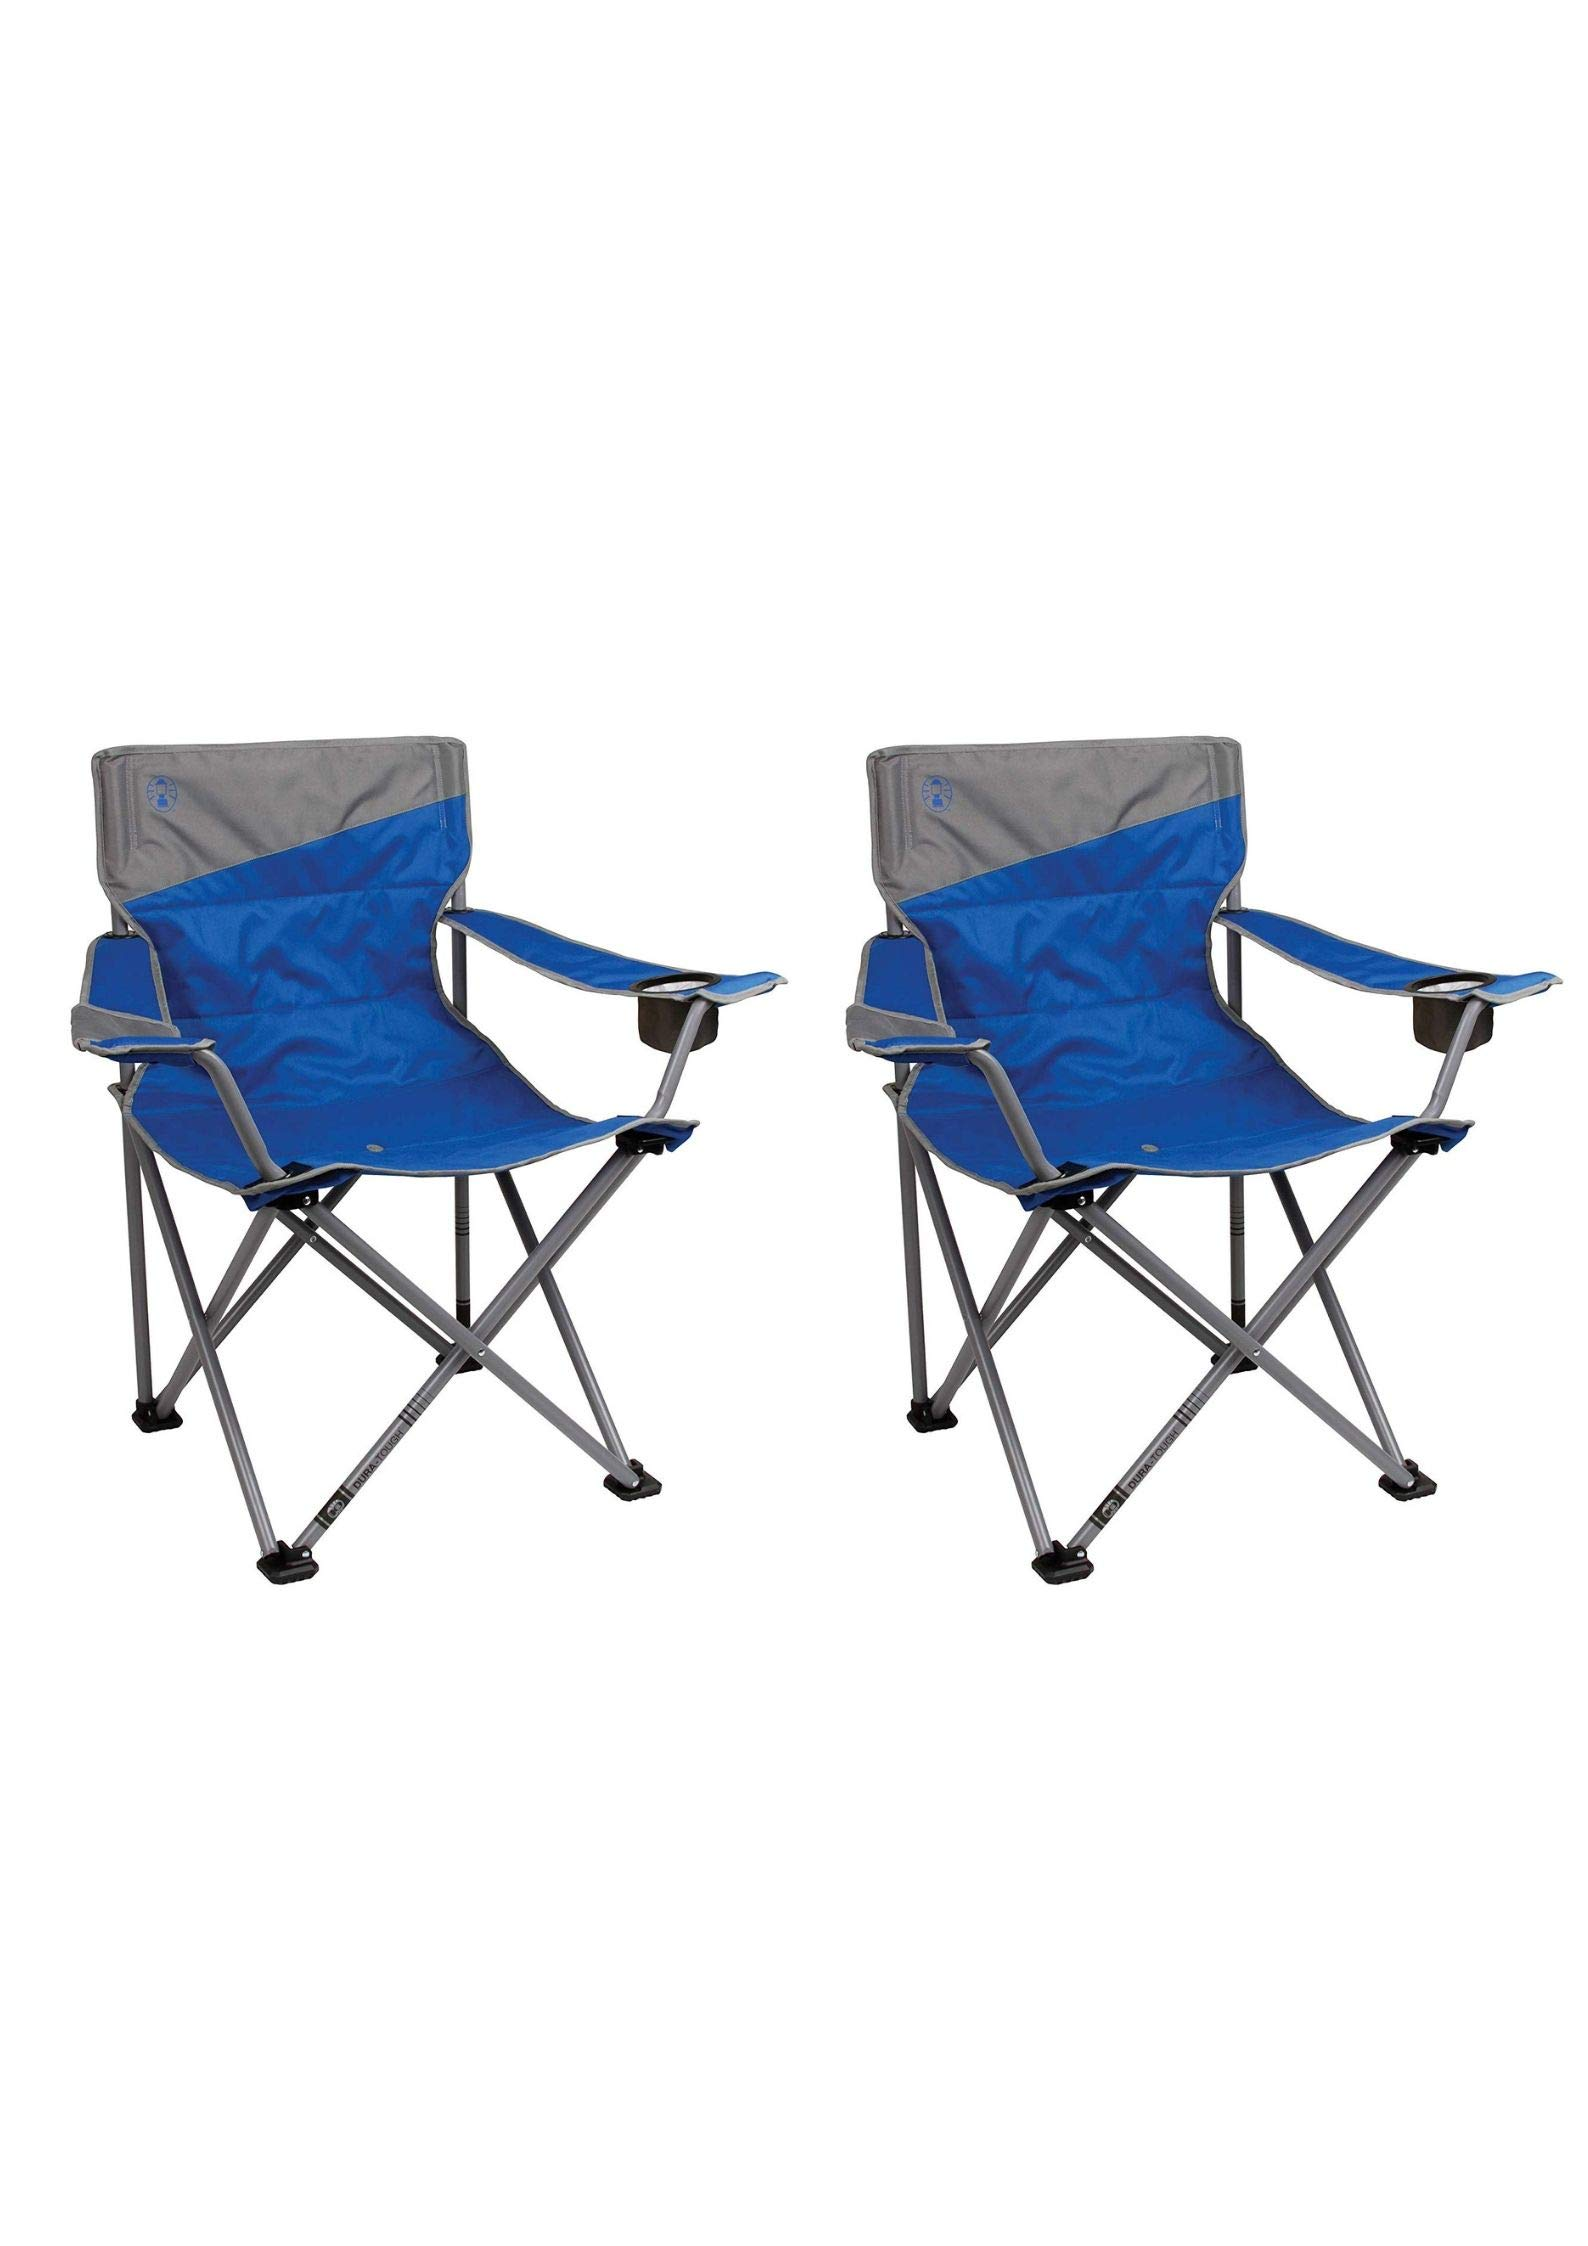 Coleman Quad Big and Tall Adults Camping Chair (Blue/Set of 2)